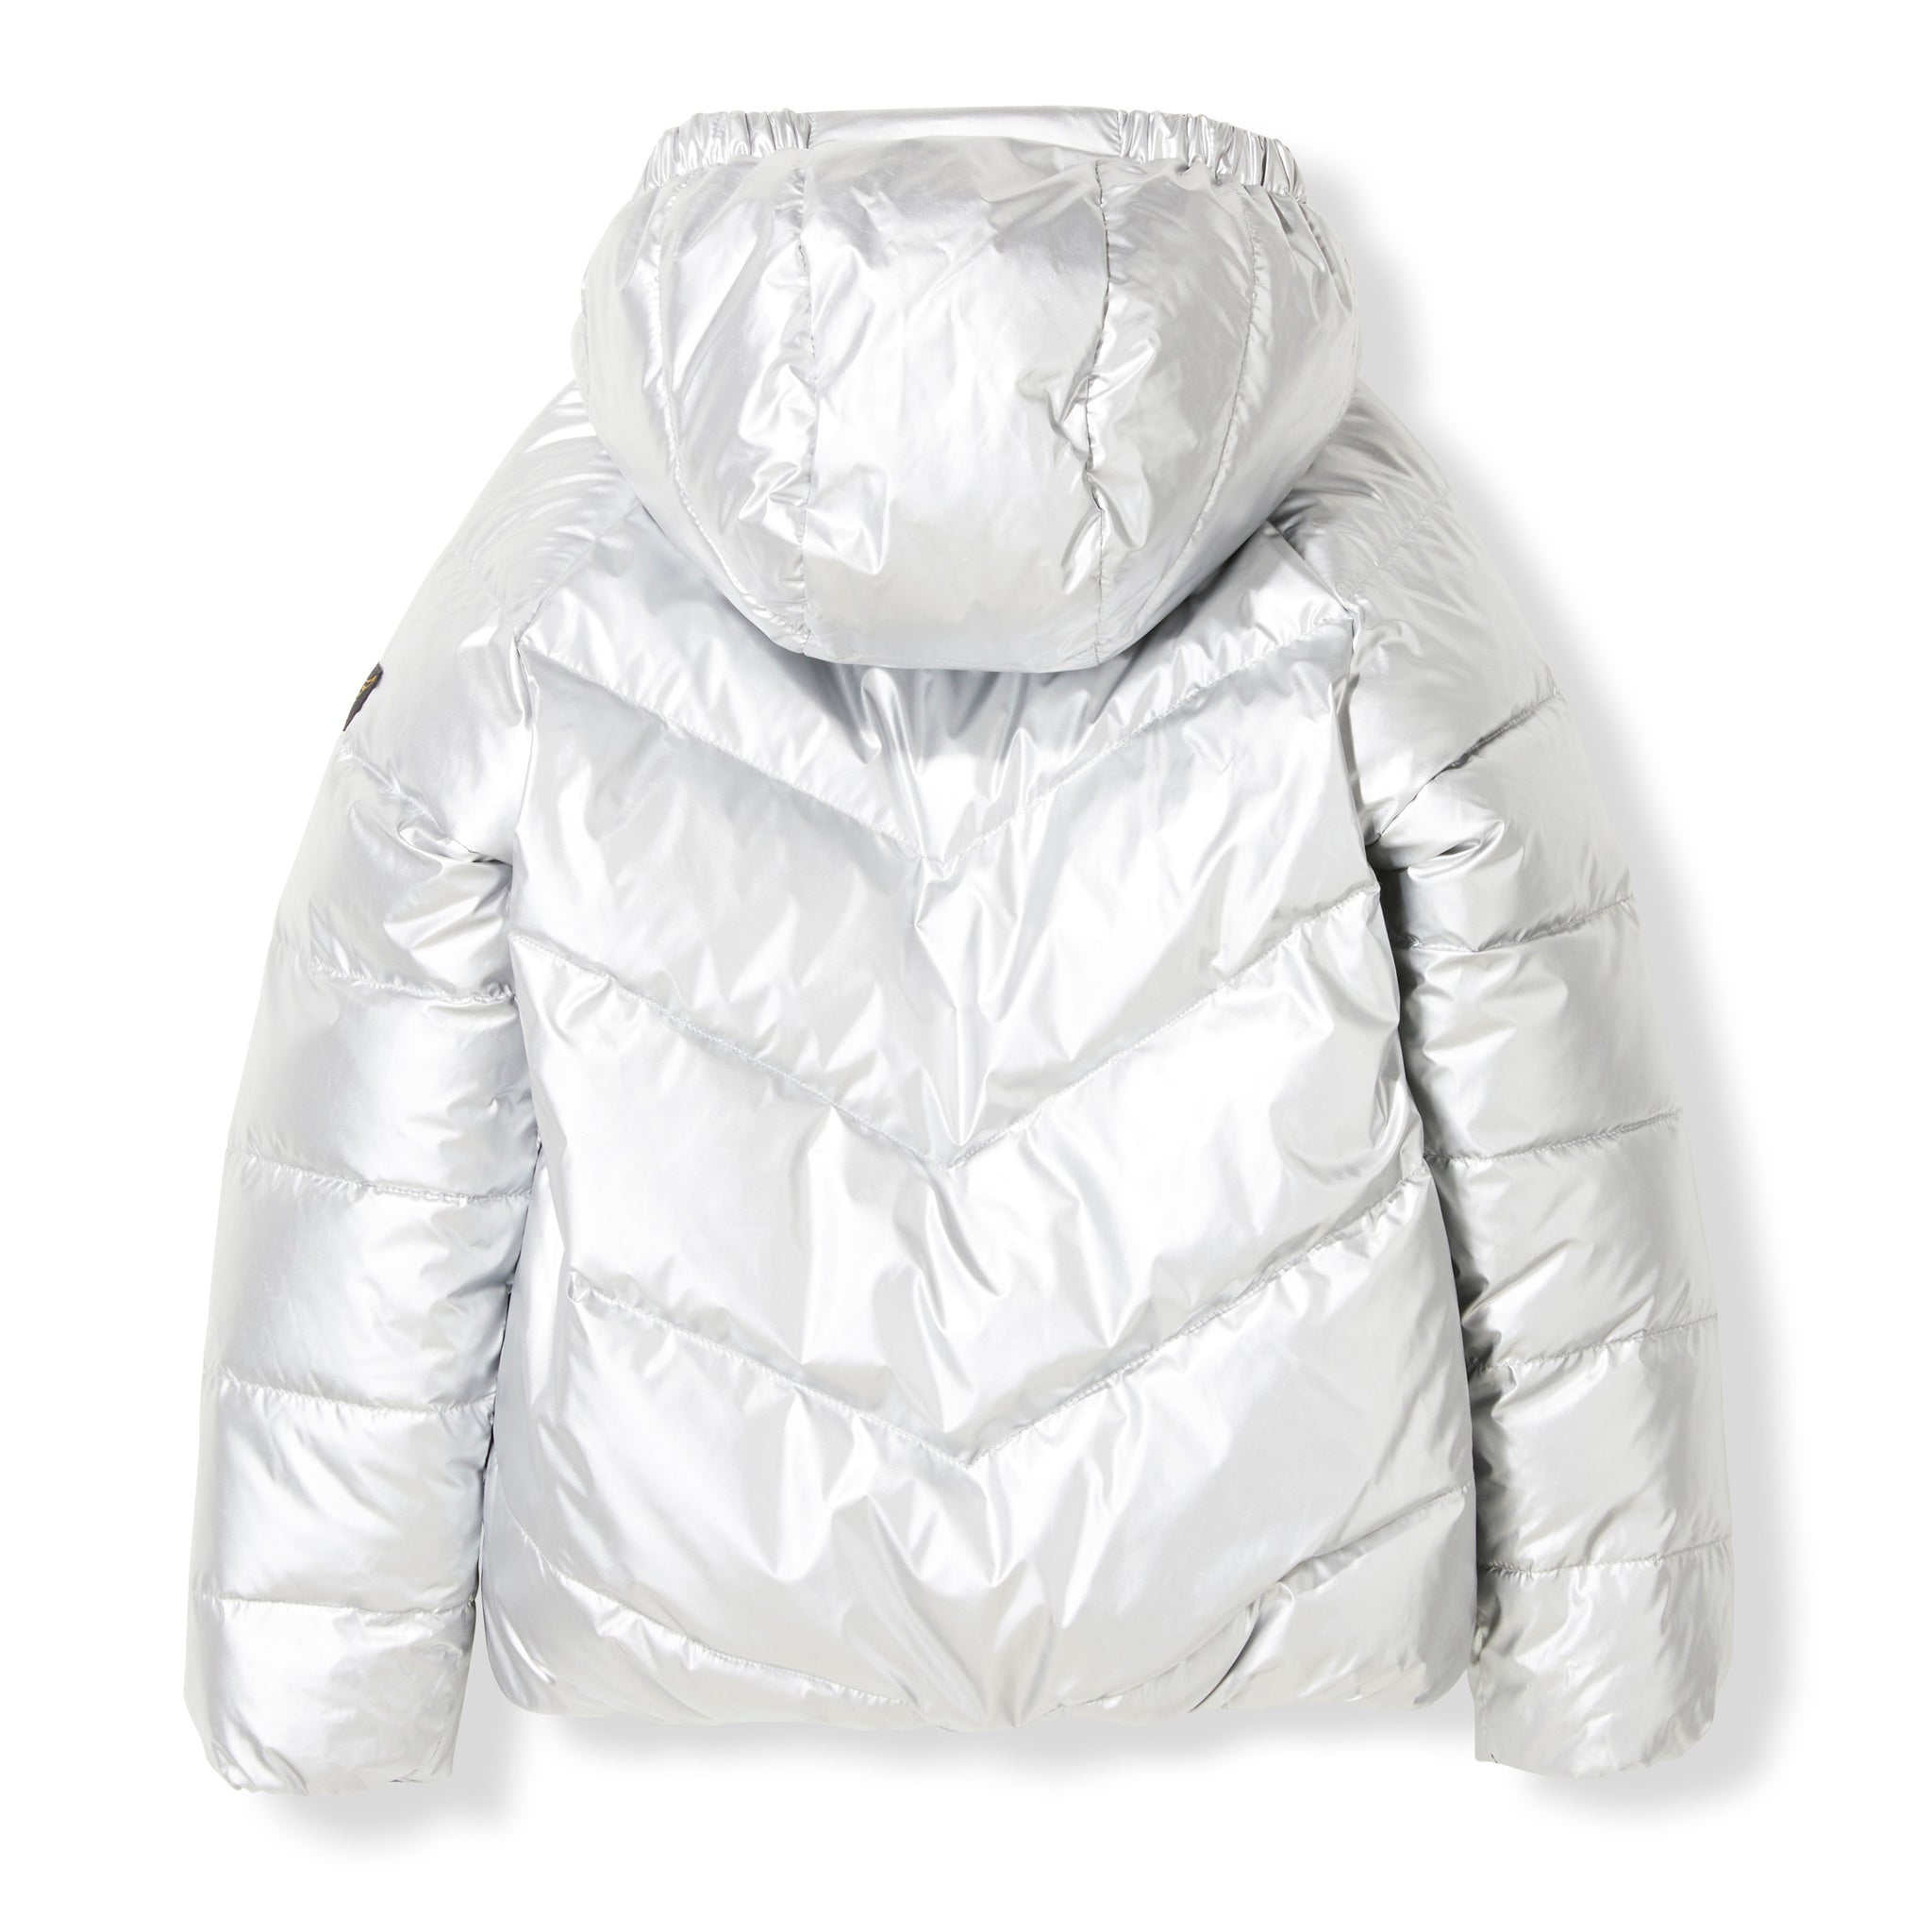 SNOWDANCE Silver Colorblock -  Woven Reversible Down Jacket 3